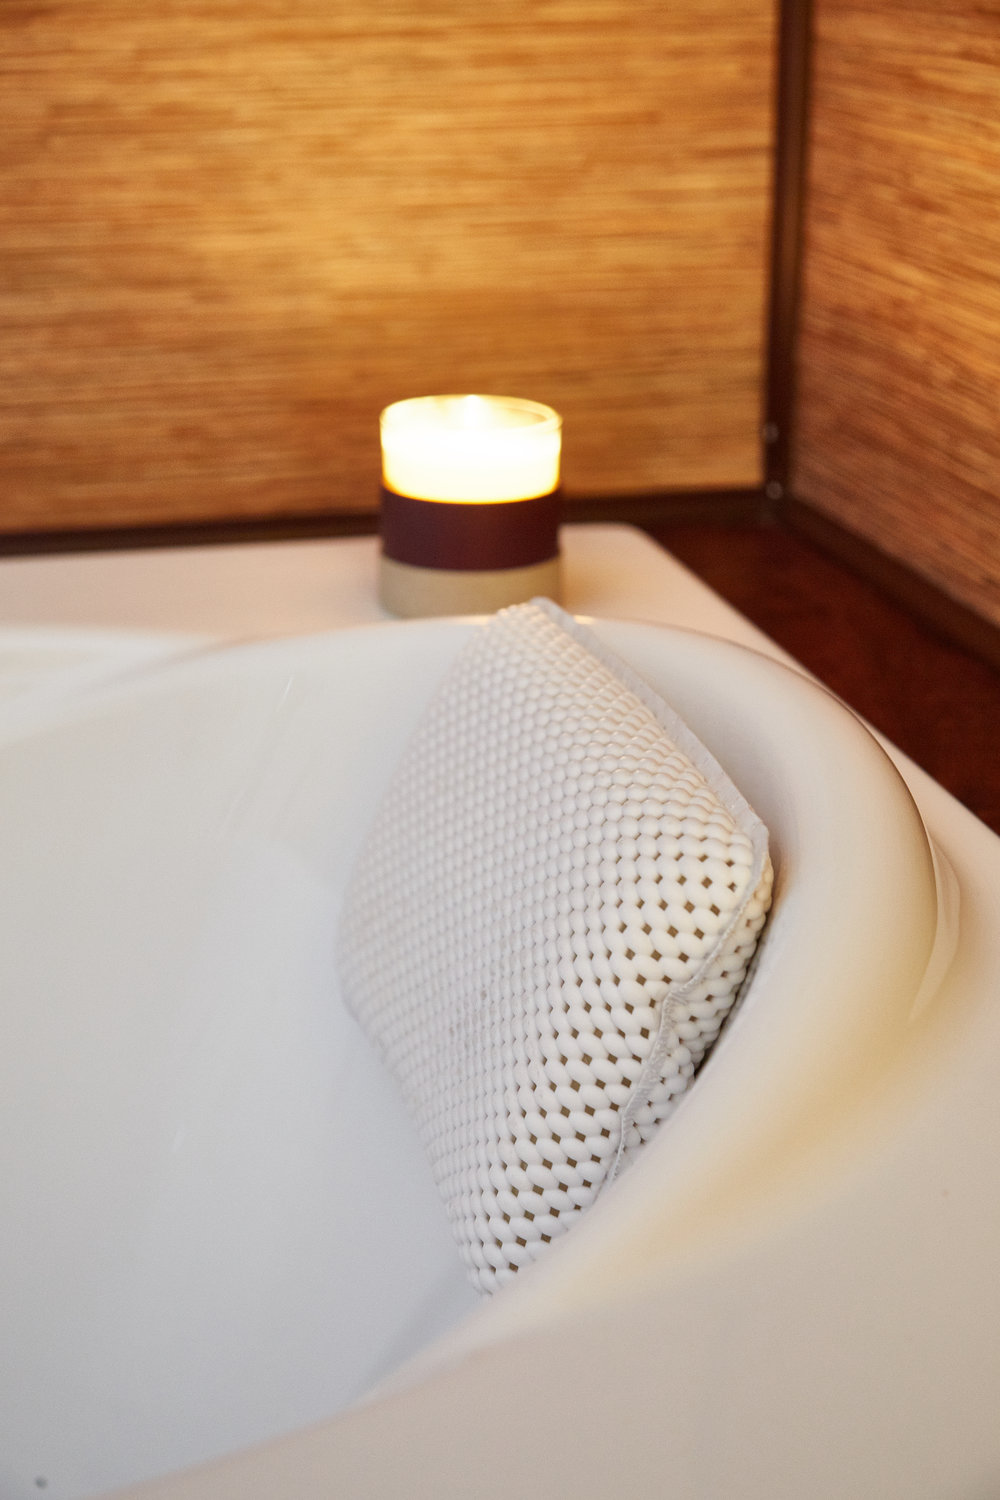 hydrothermo massage bath